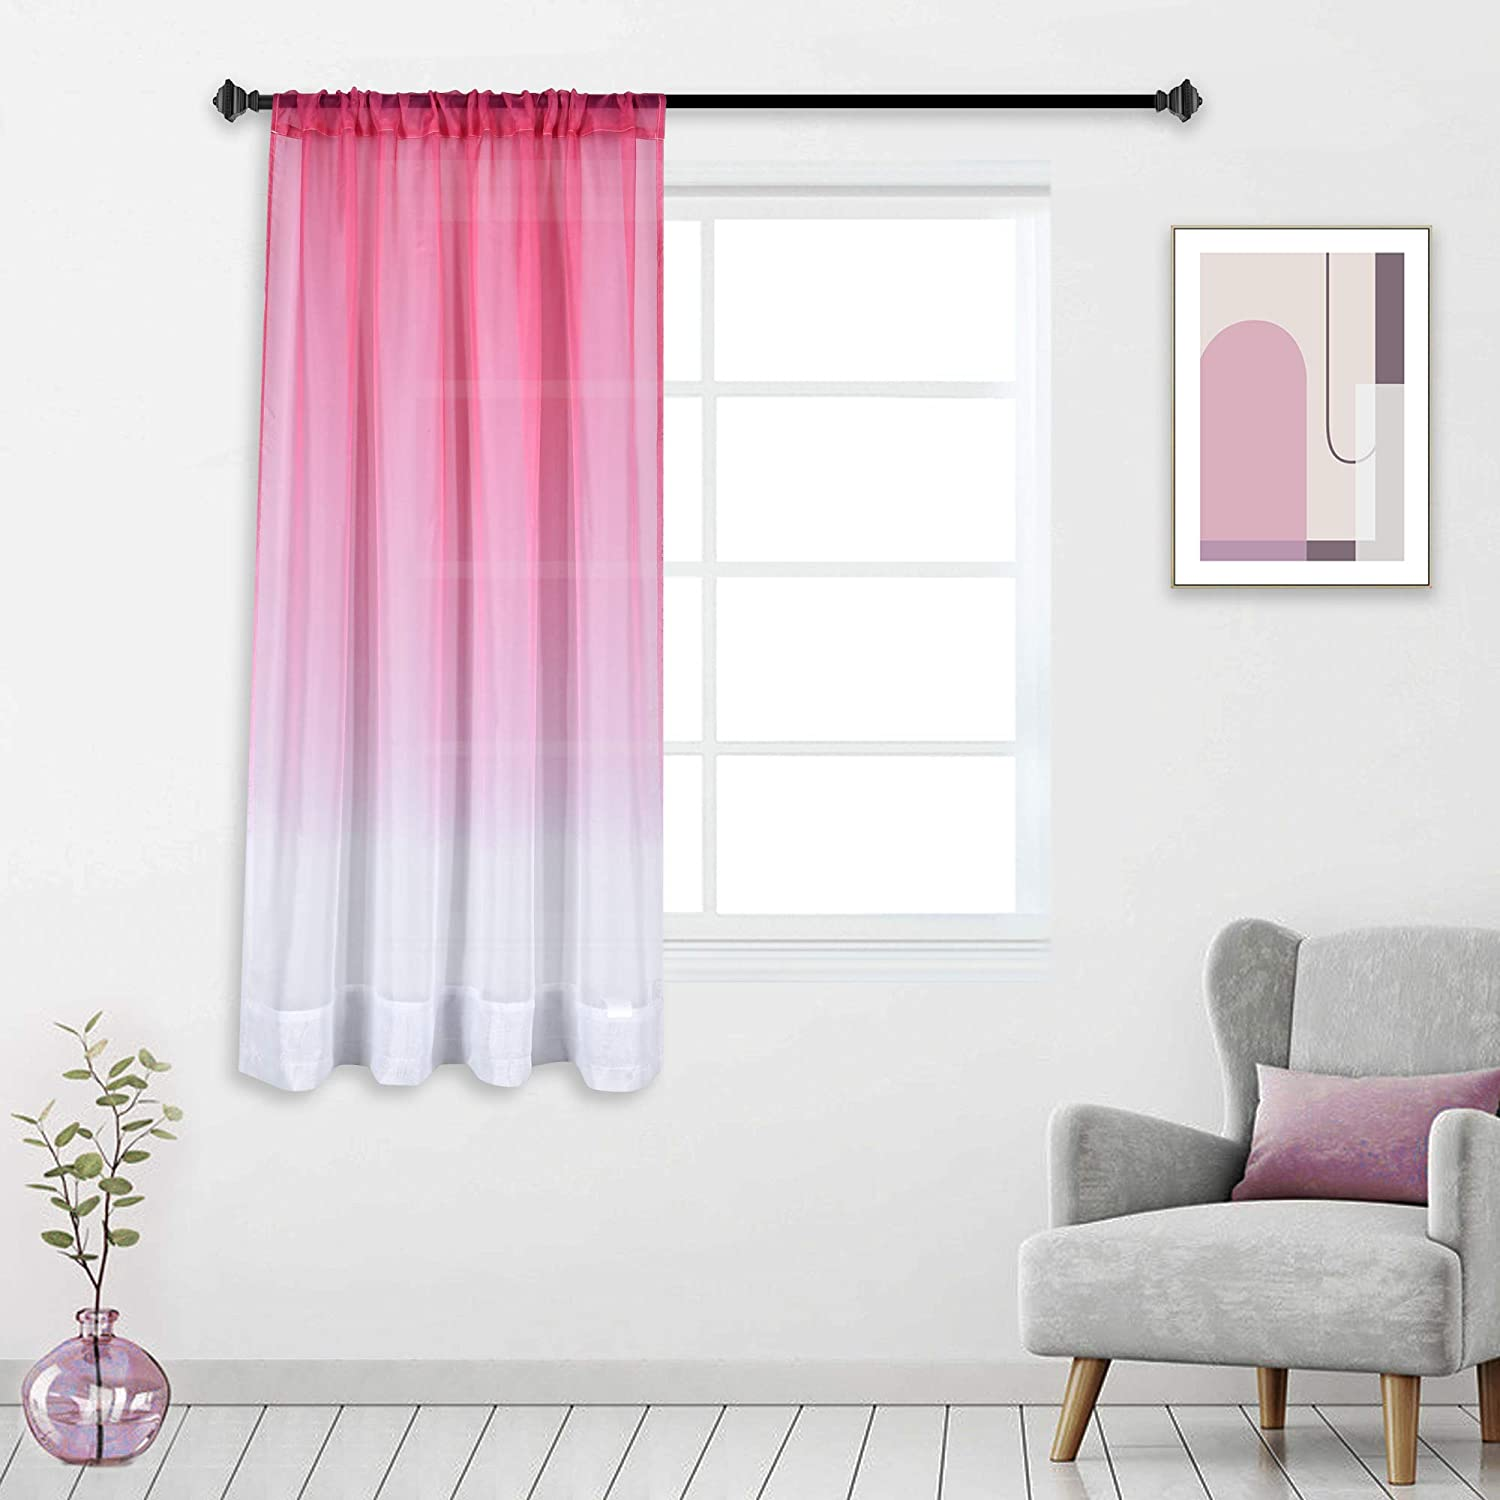 Pink Sheer Curtain for Little Girls Kids Room Bedroom Ombre Gradient Window Panel for Princess Teenage Daughter Closet-Sheer Backdrop Curtain Drape for Wedding Party Decoration 63 Inch Pink and White